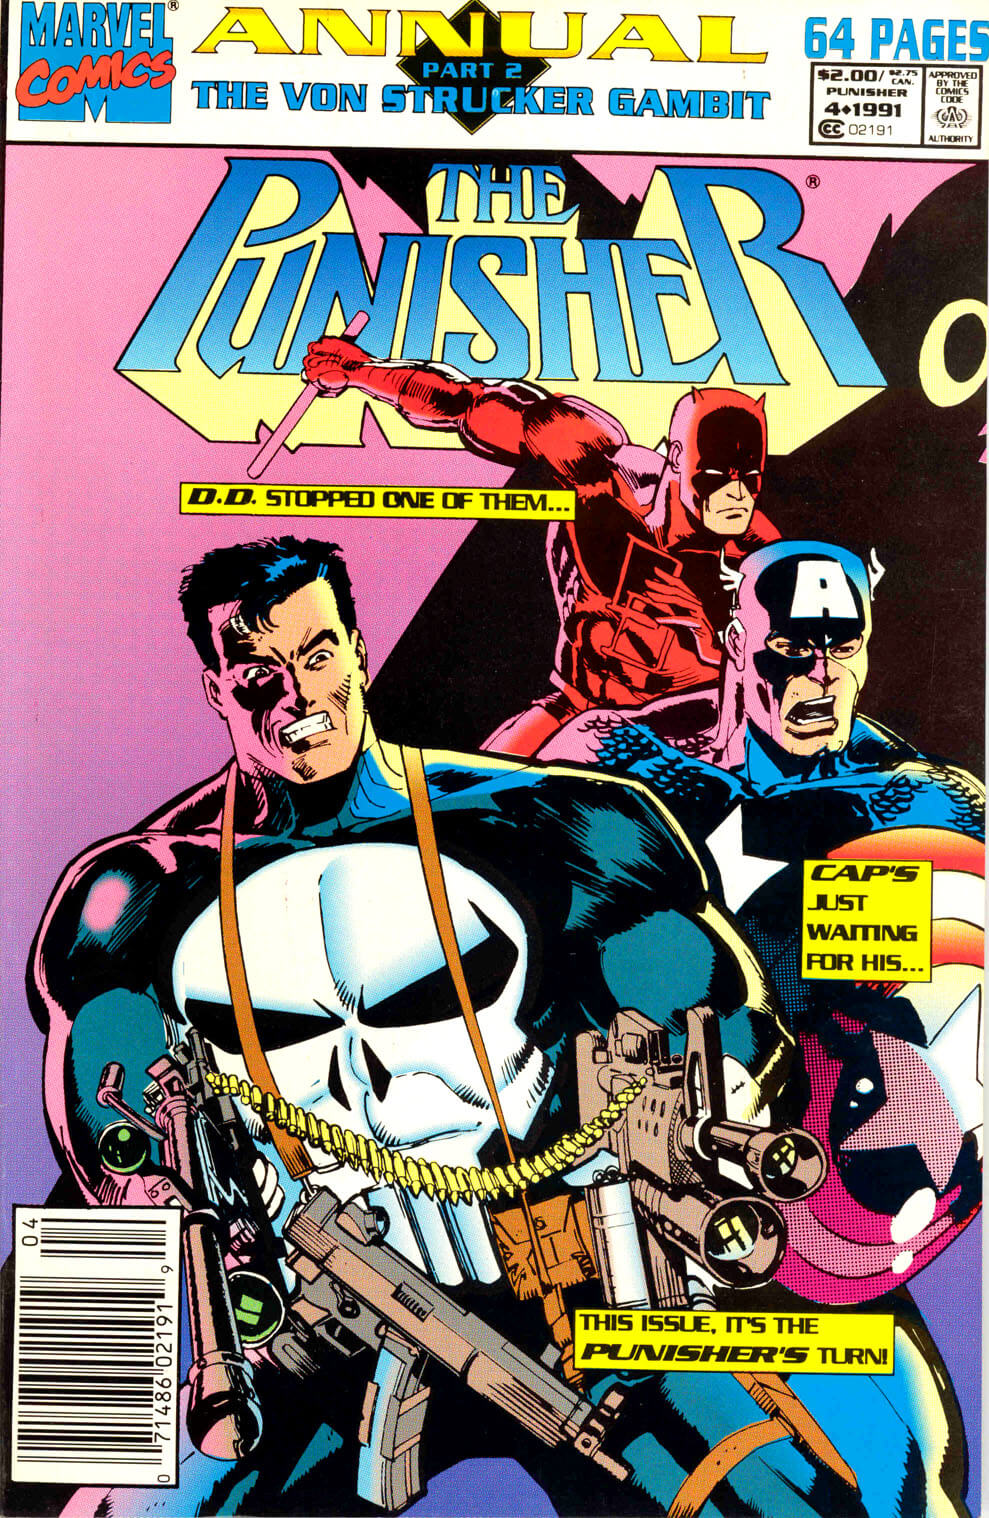 The Punisher v2 Annual #4